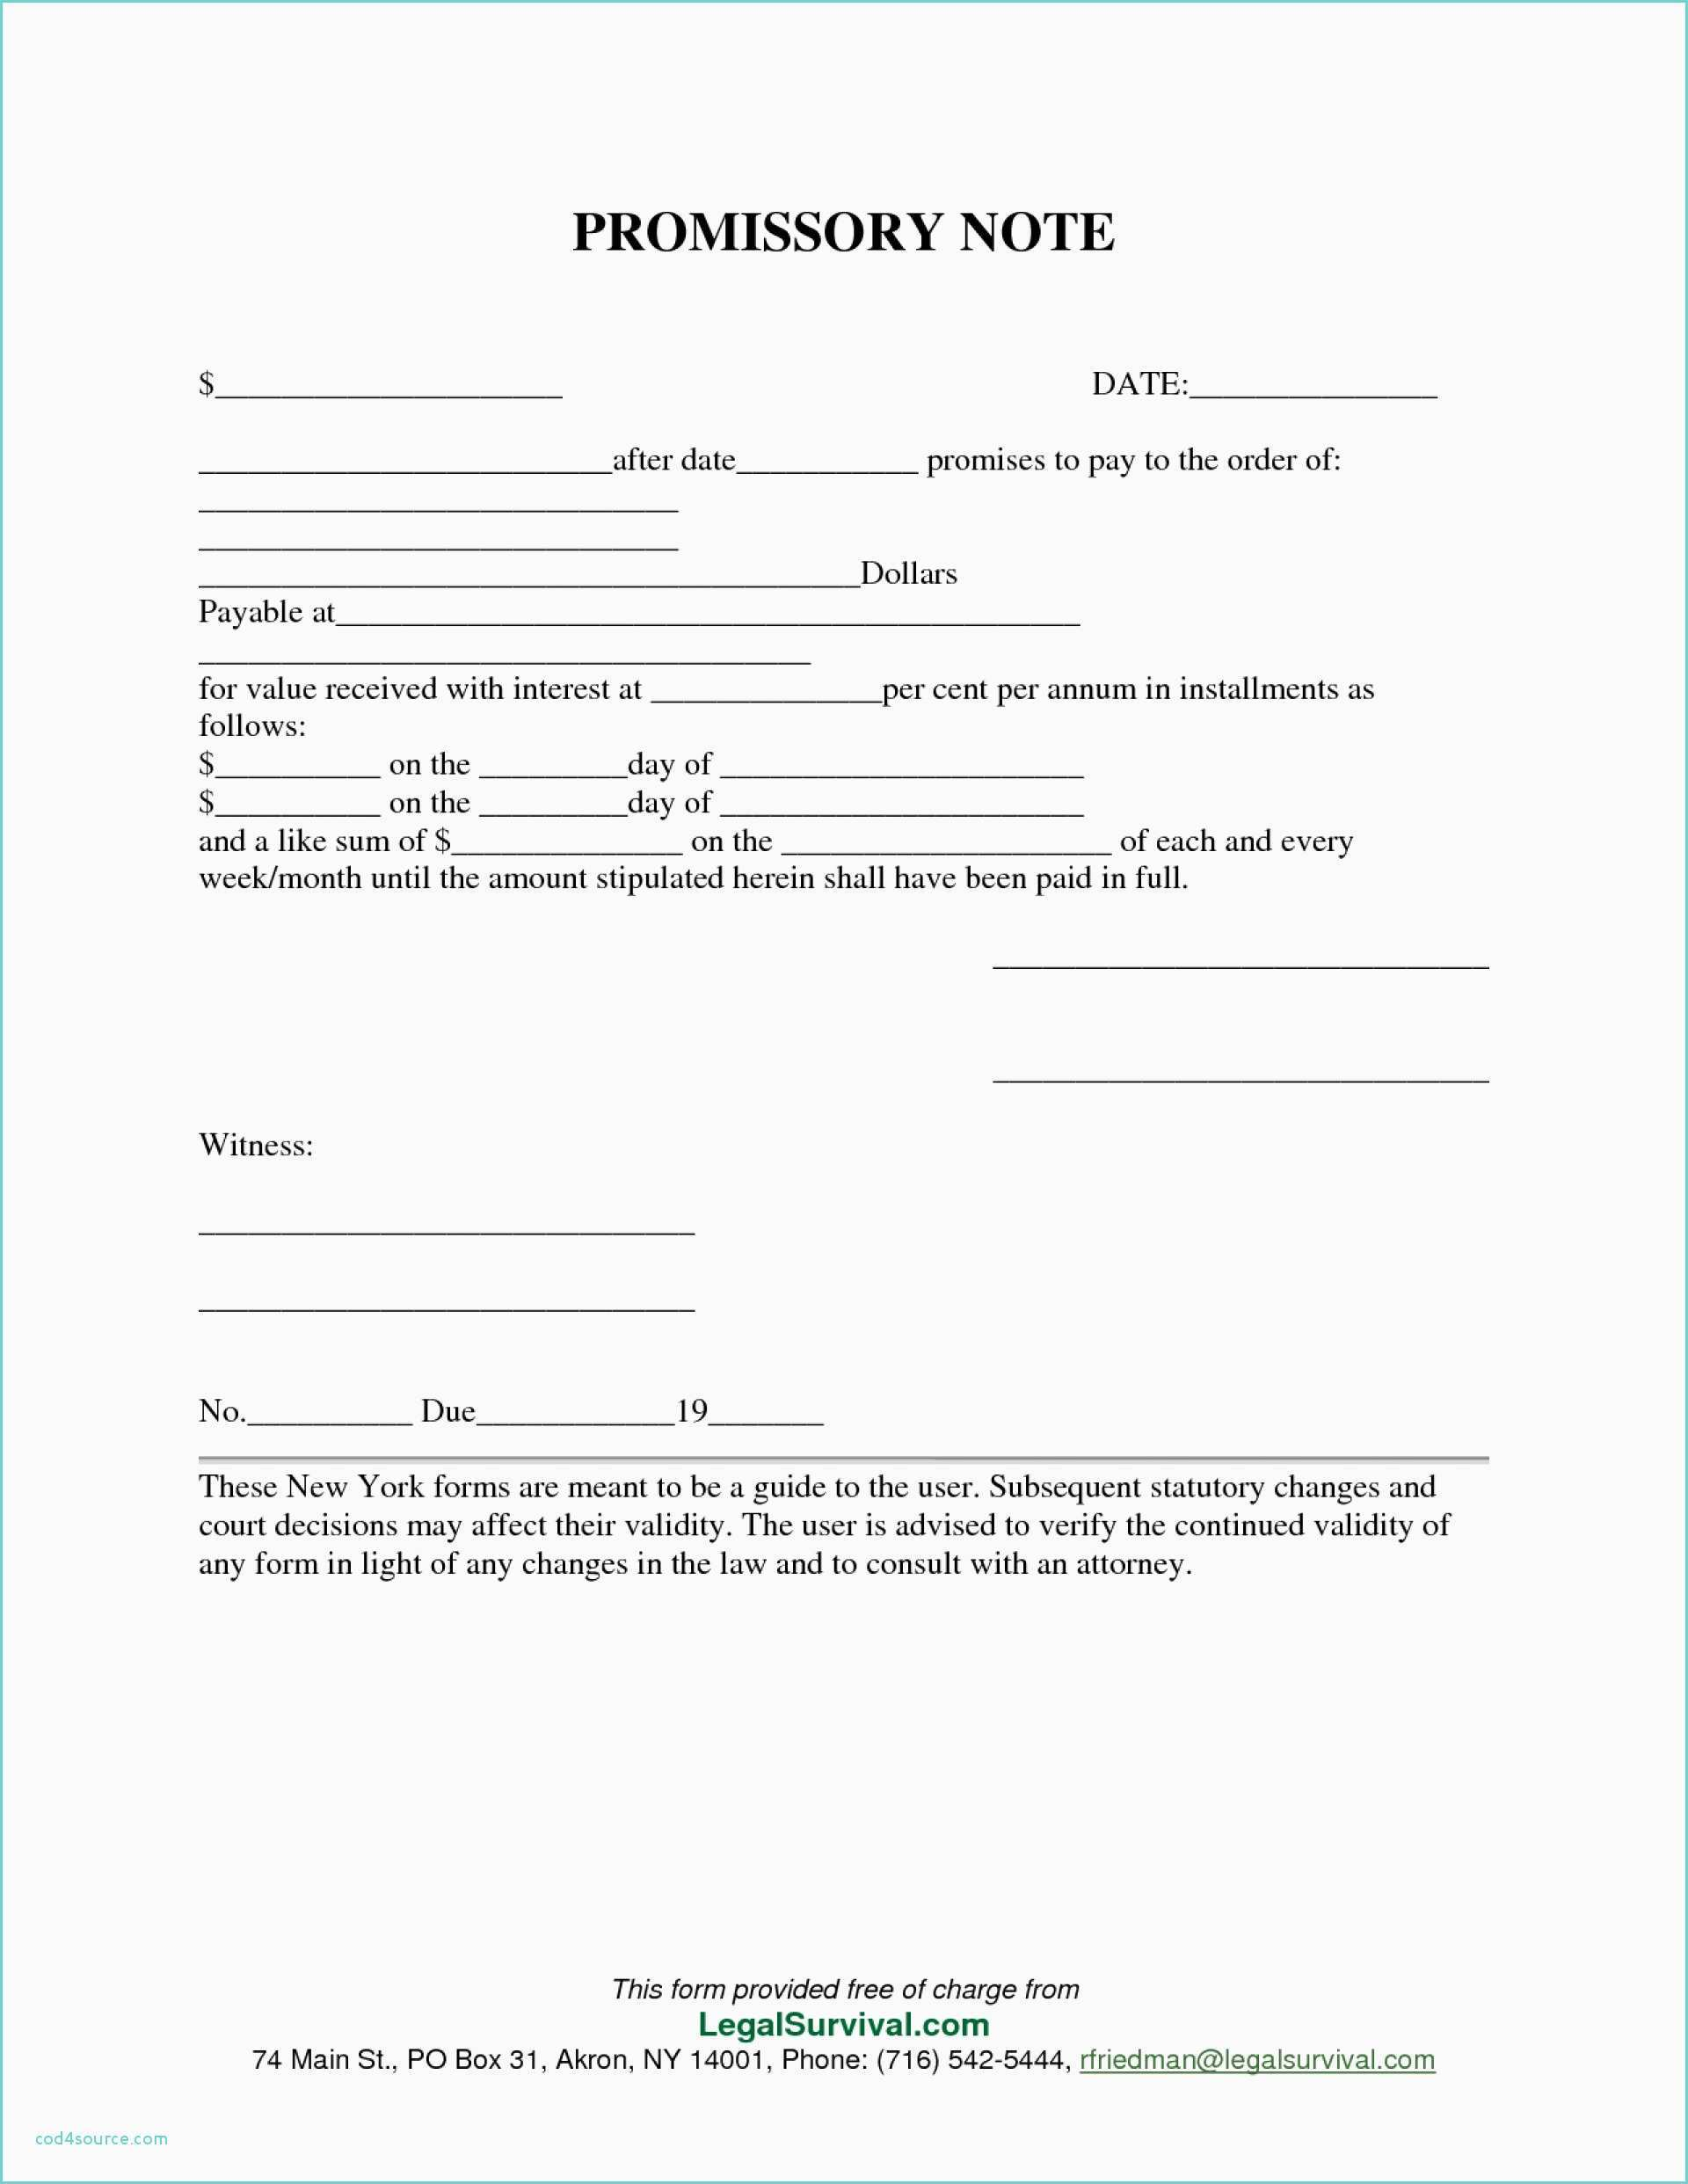 Free Promissory Note Template Promissory Note Template Form Dreaded Templates Georgia Format Pdf